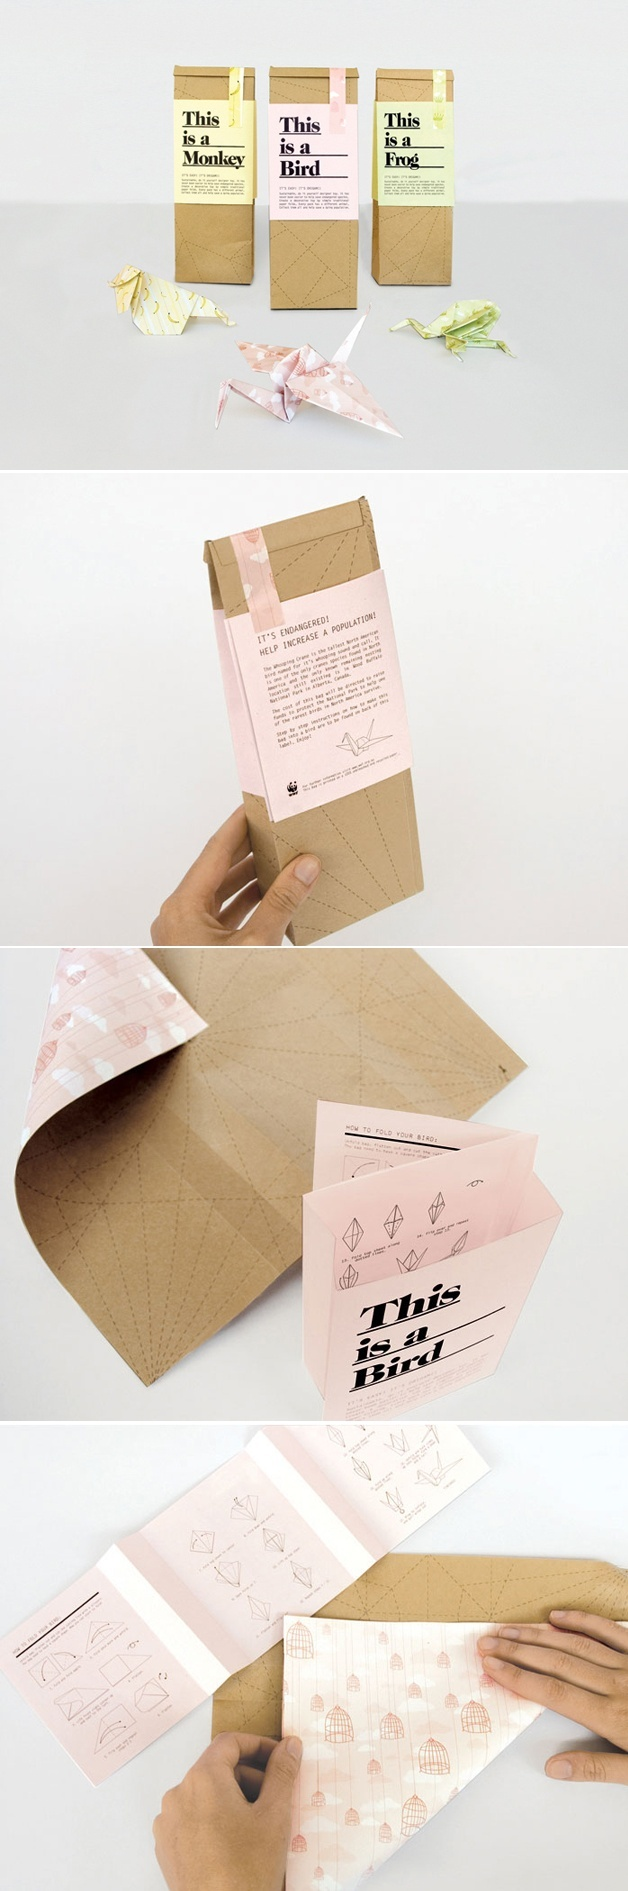 http://website-submissions.digimkts.com Excellent, listing my site. Paperbags containing simple step by step instructions on how to fold the bag into an origami animal, in order to become a sustainable designer toy in paper. Designed by Magdalena Czarnecki.